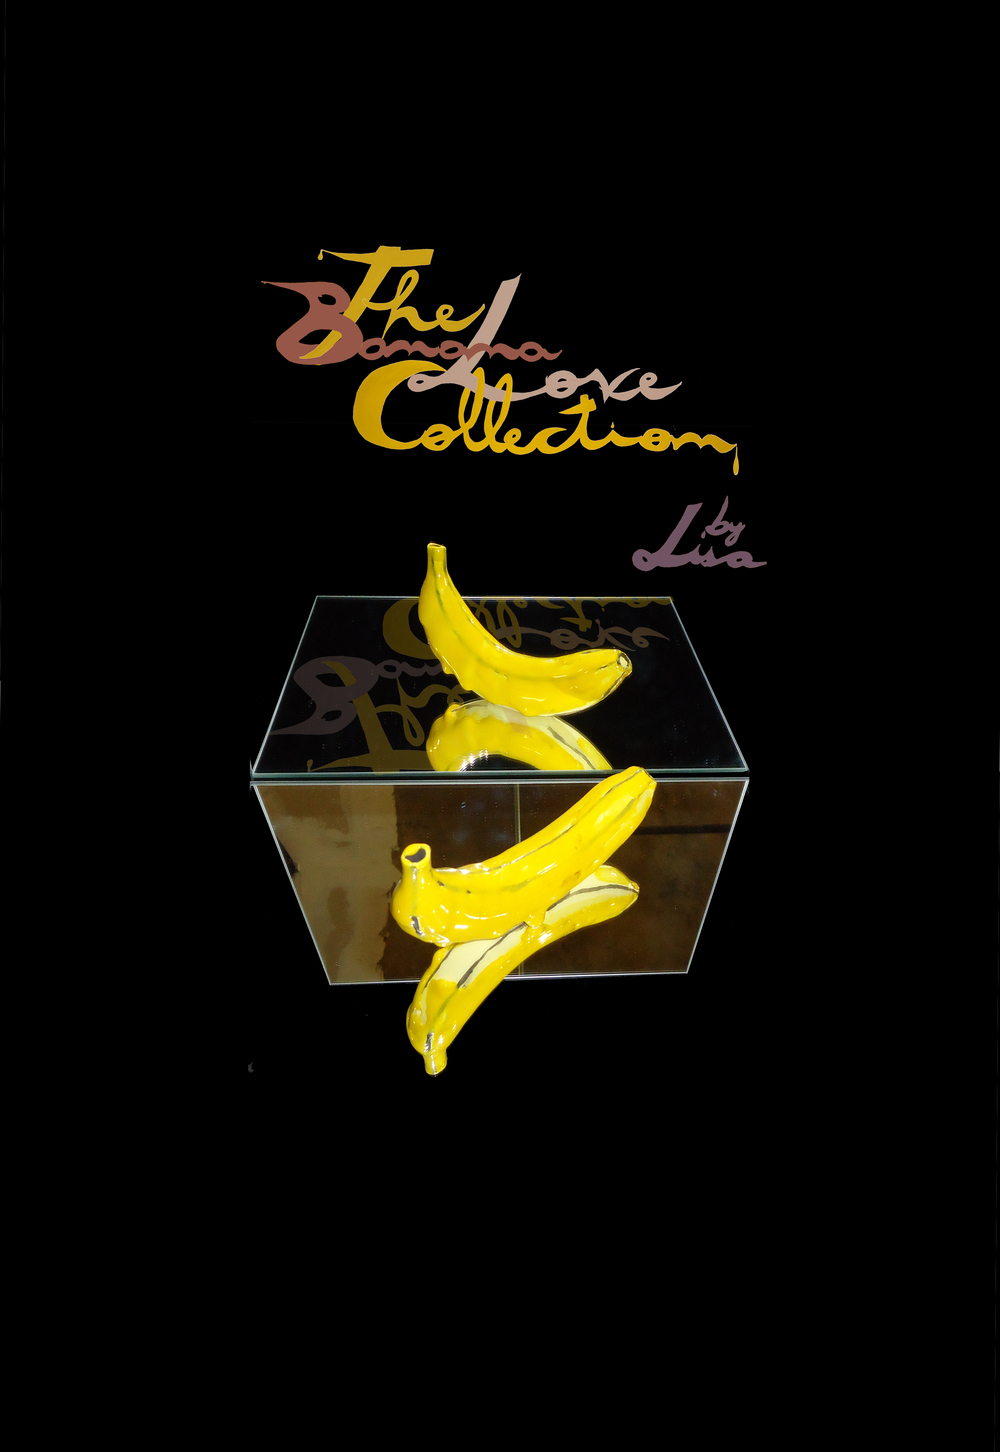 THE BANANA LOVE COLLECTION BY LISA POSTER ART